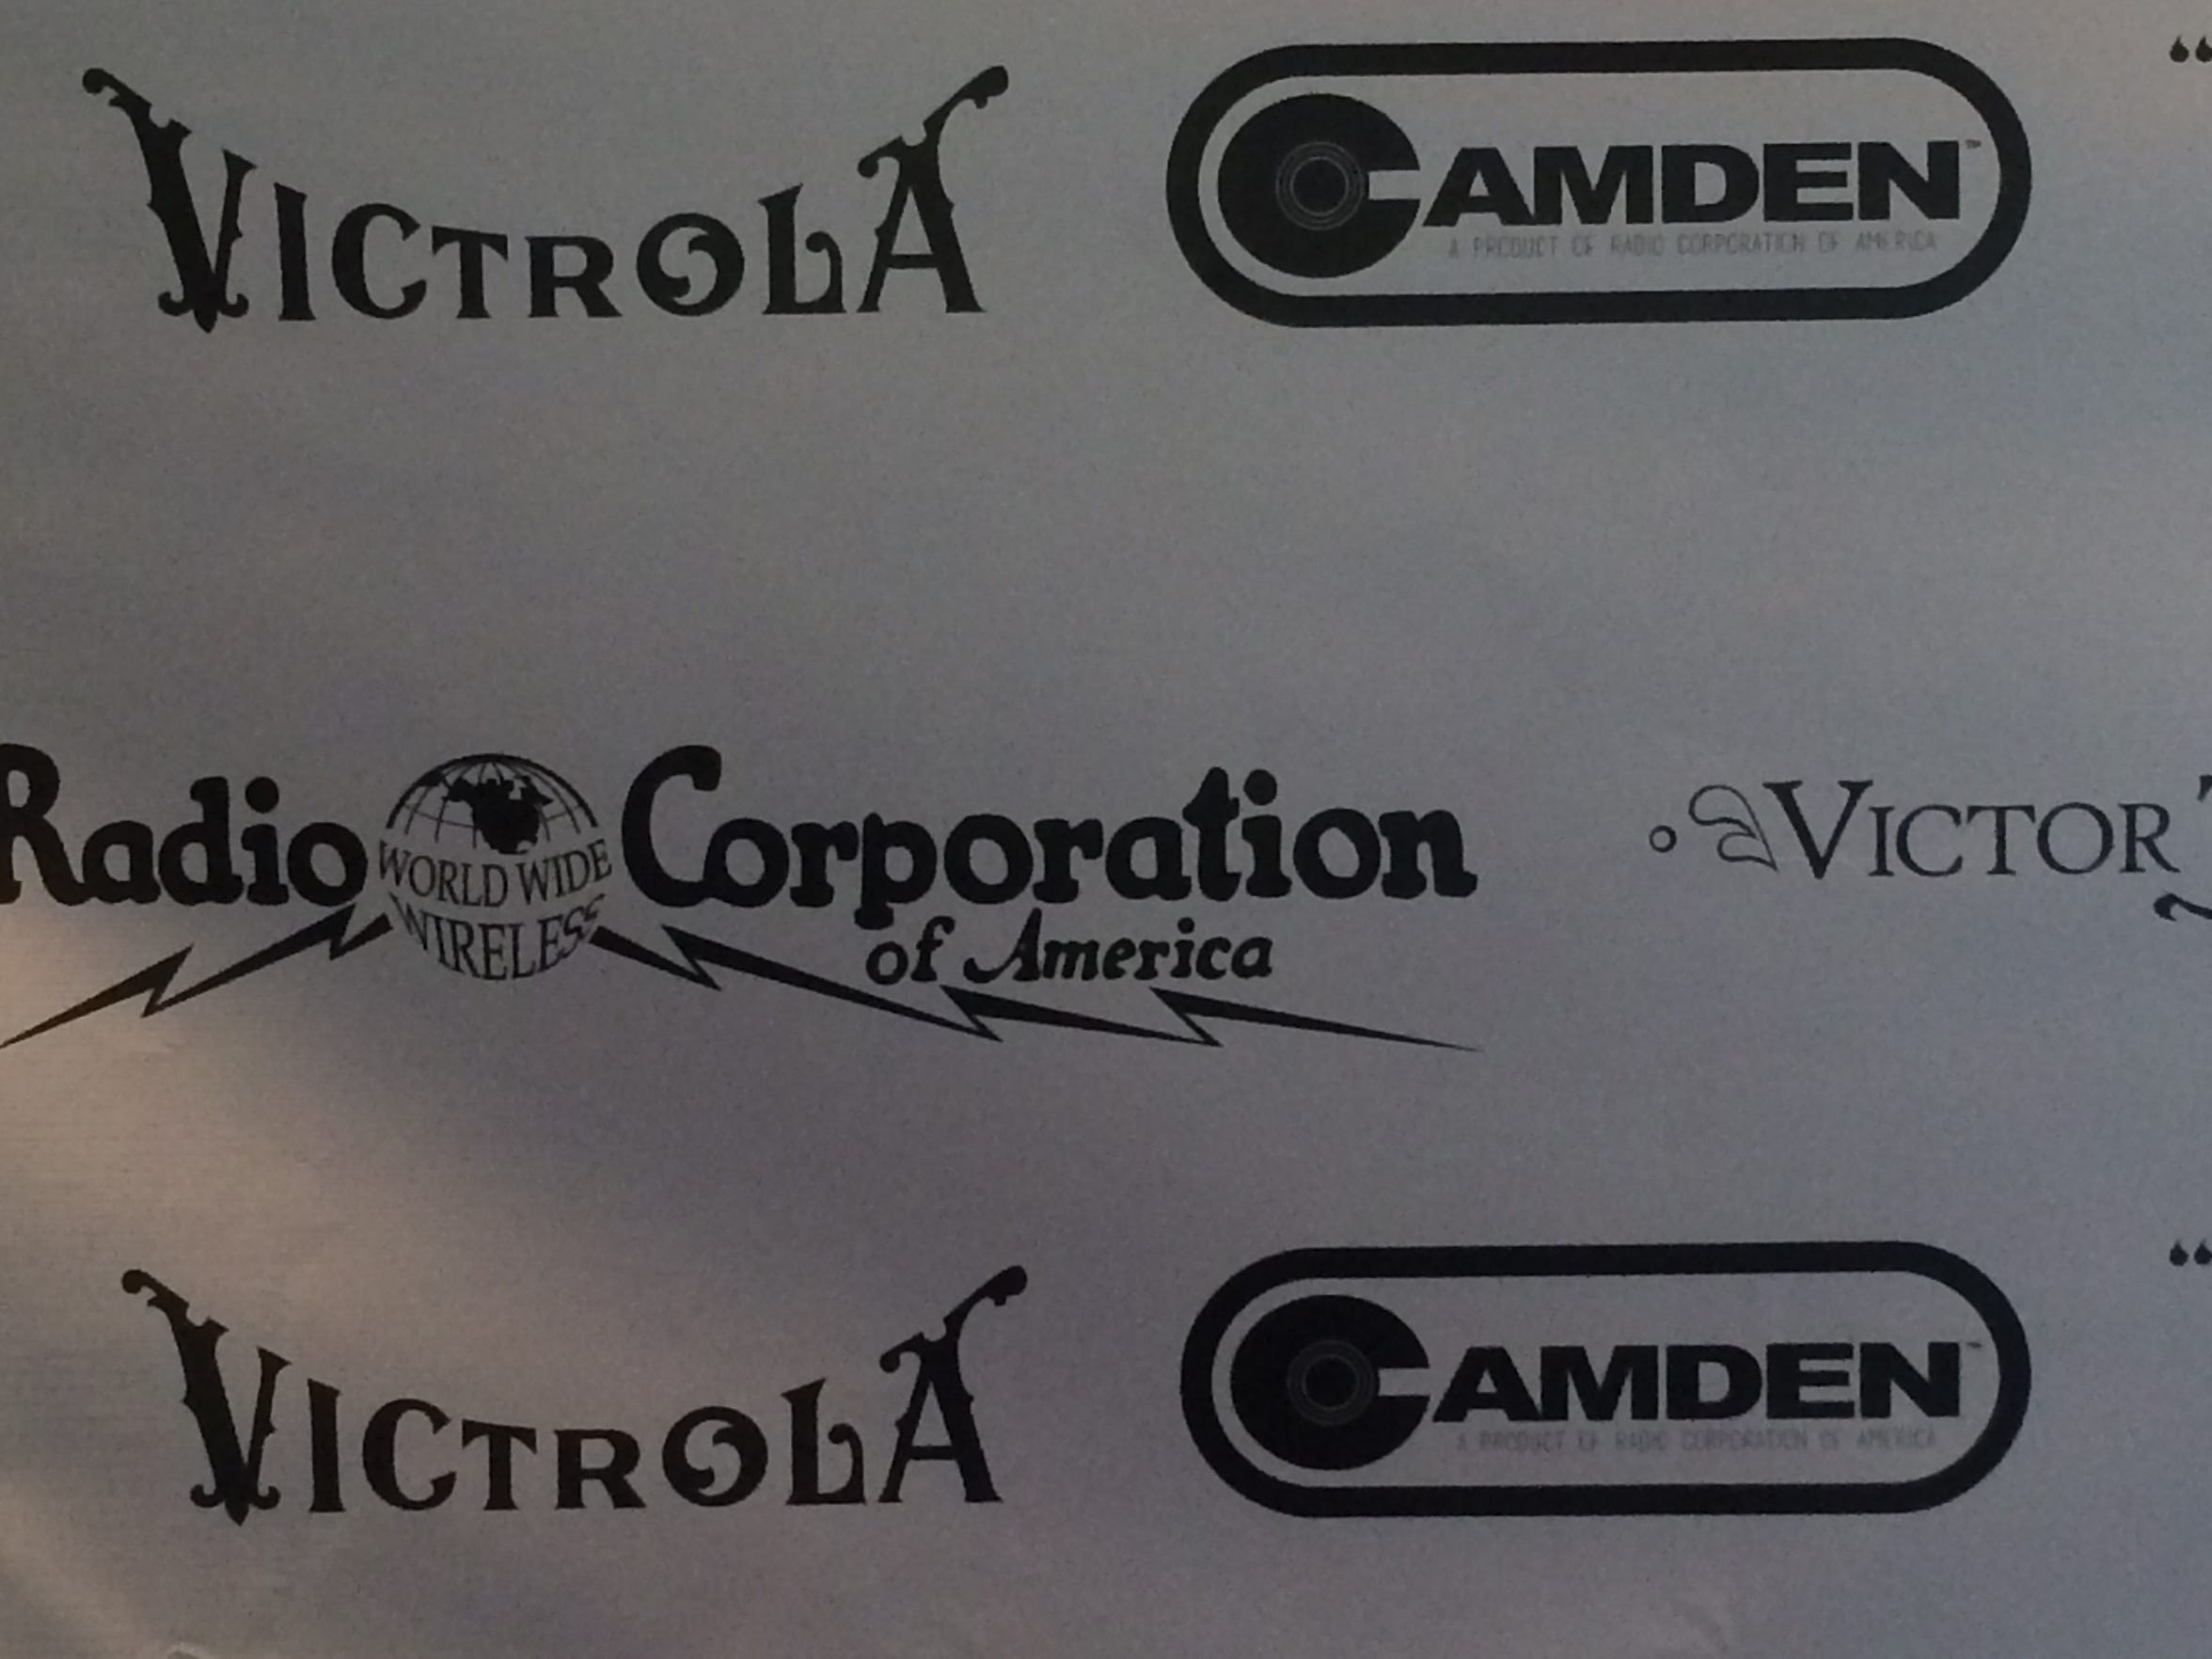 Victrola, Radio  Corporation of America, Victor Records and His Master's Voice are among the brands now owned by Graham Alexander.